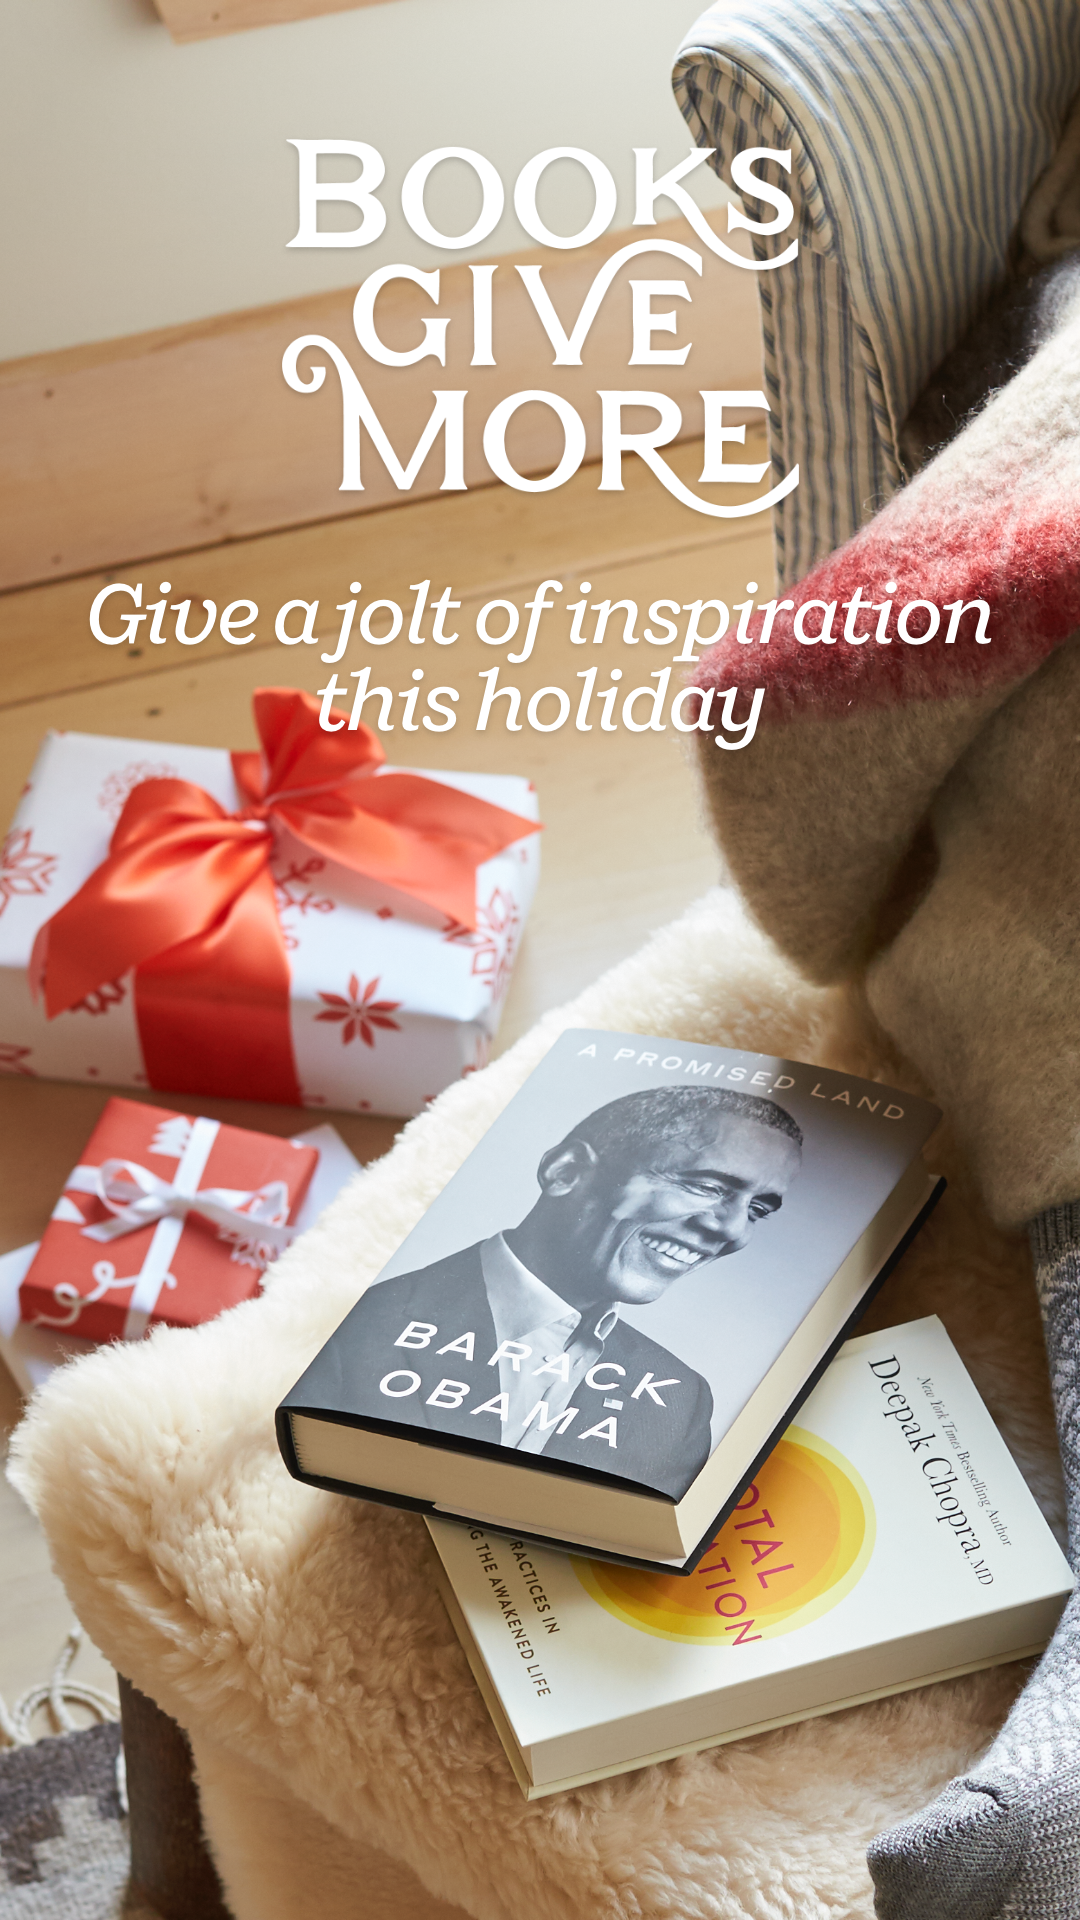 Give inspiration this holiday season. From This Just Speaks to Me by Hoda Kotb to Becoming by Michelle Obama to Total Meditation by Deepak Chopra to One Life by Megan Rapinoe to Untamed by Glennon Doyle to A Promised Land by Barack Obama, these books will uplift the readers on your holiday gift list.